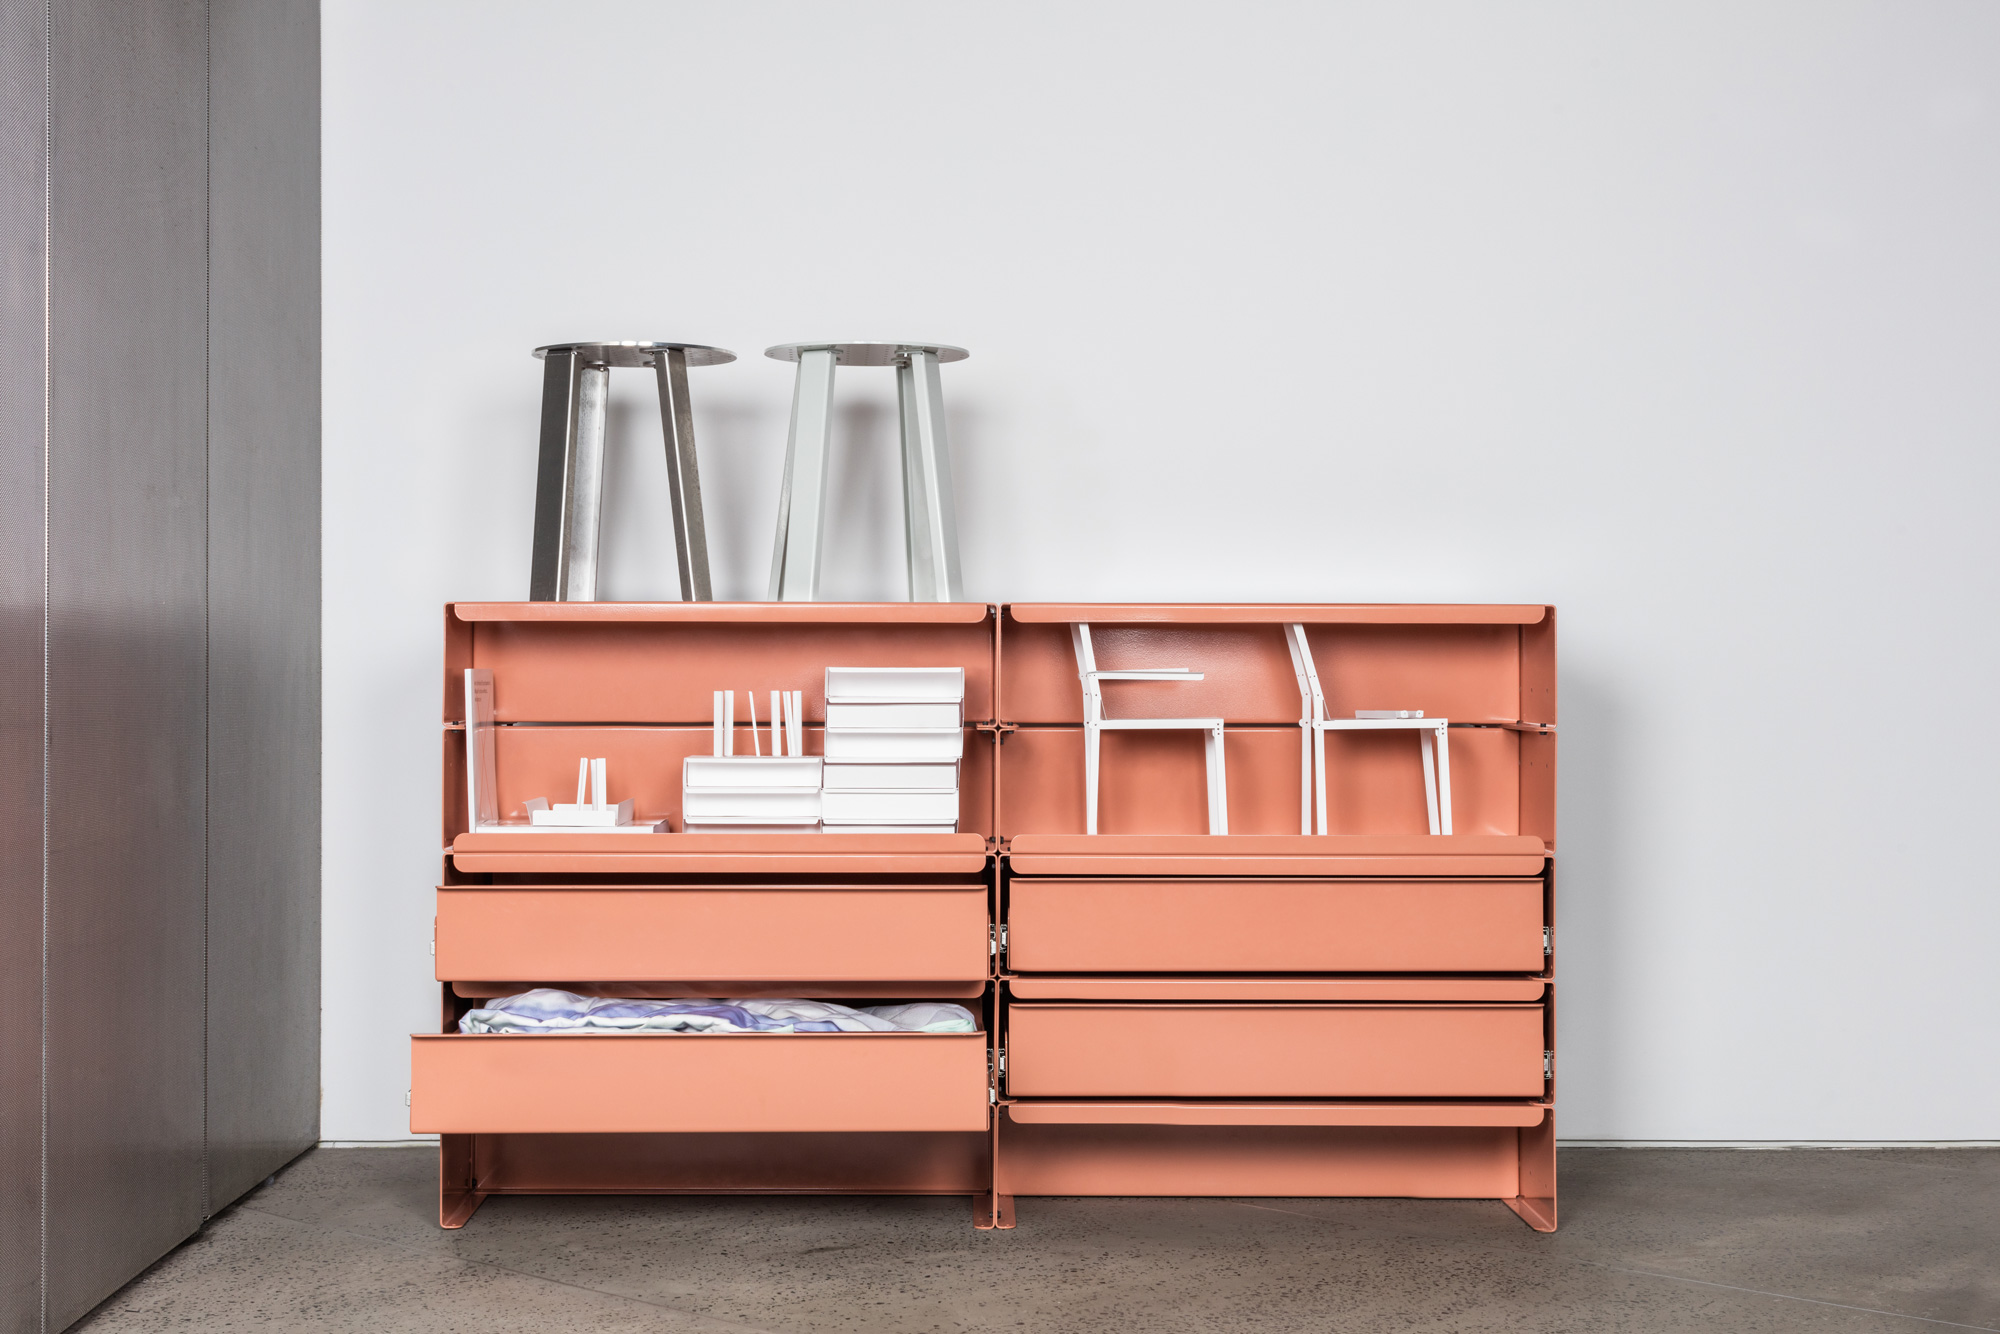 mos-architects-model-furniture-2